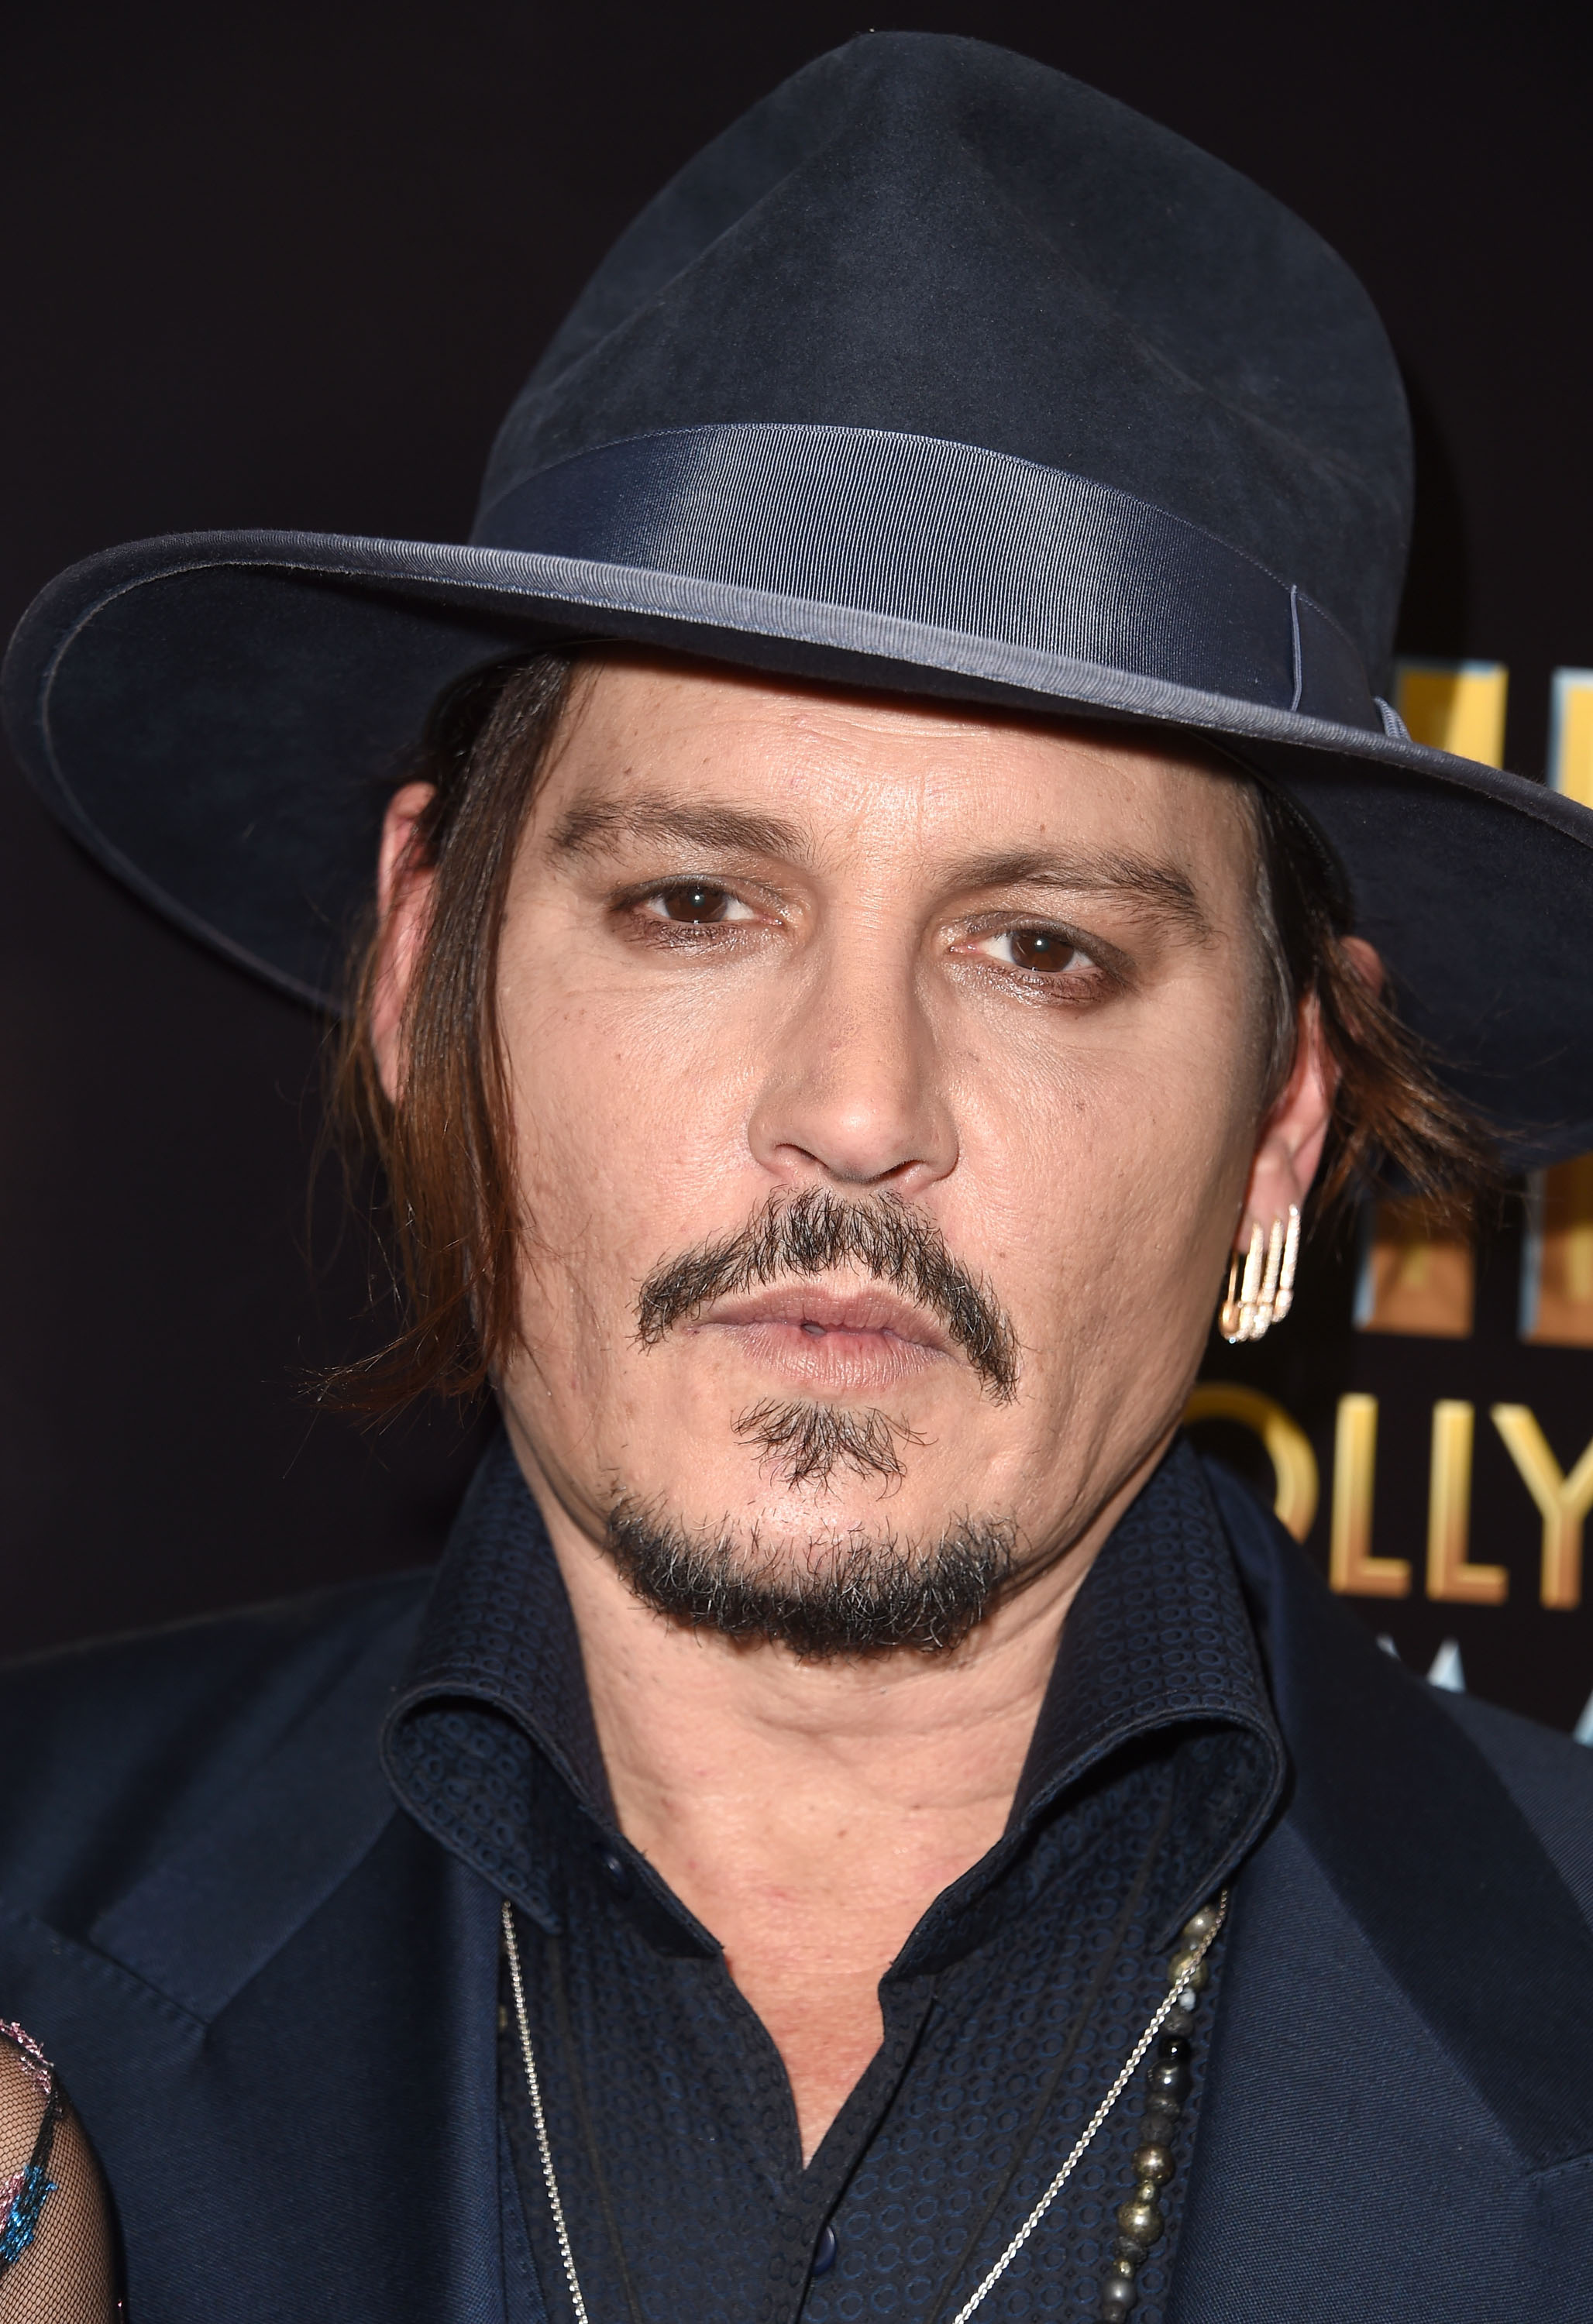 Johnny Depp at the 19th Annual Hollywood Film Awards in Beverly Hills on Nov. 1, 2015.